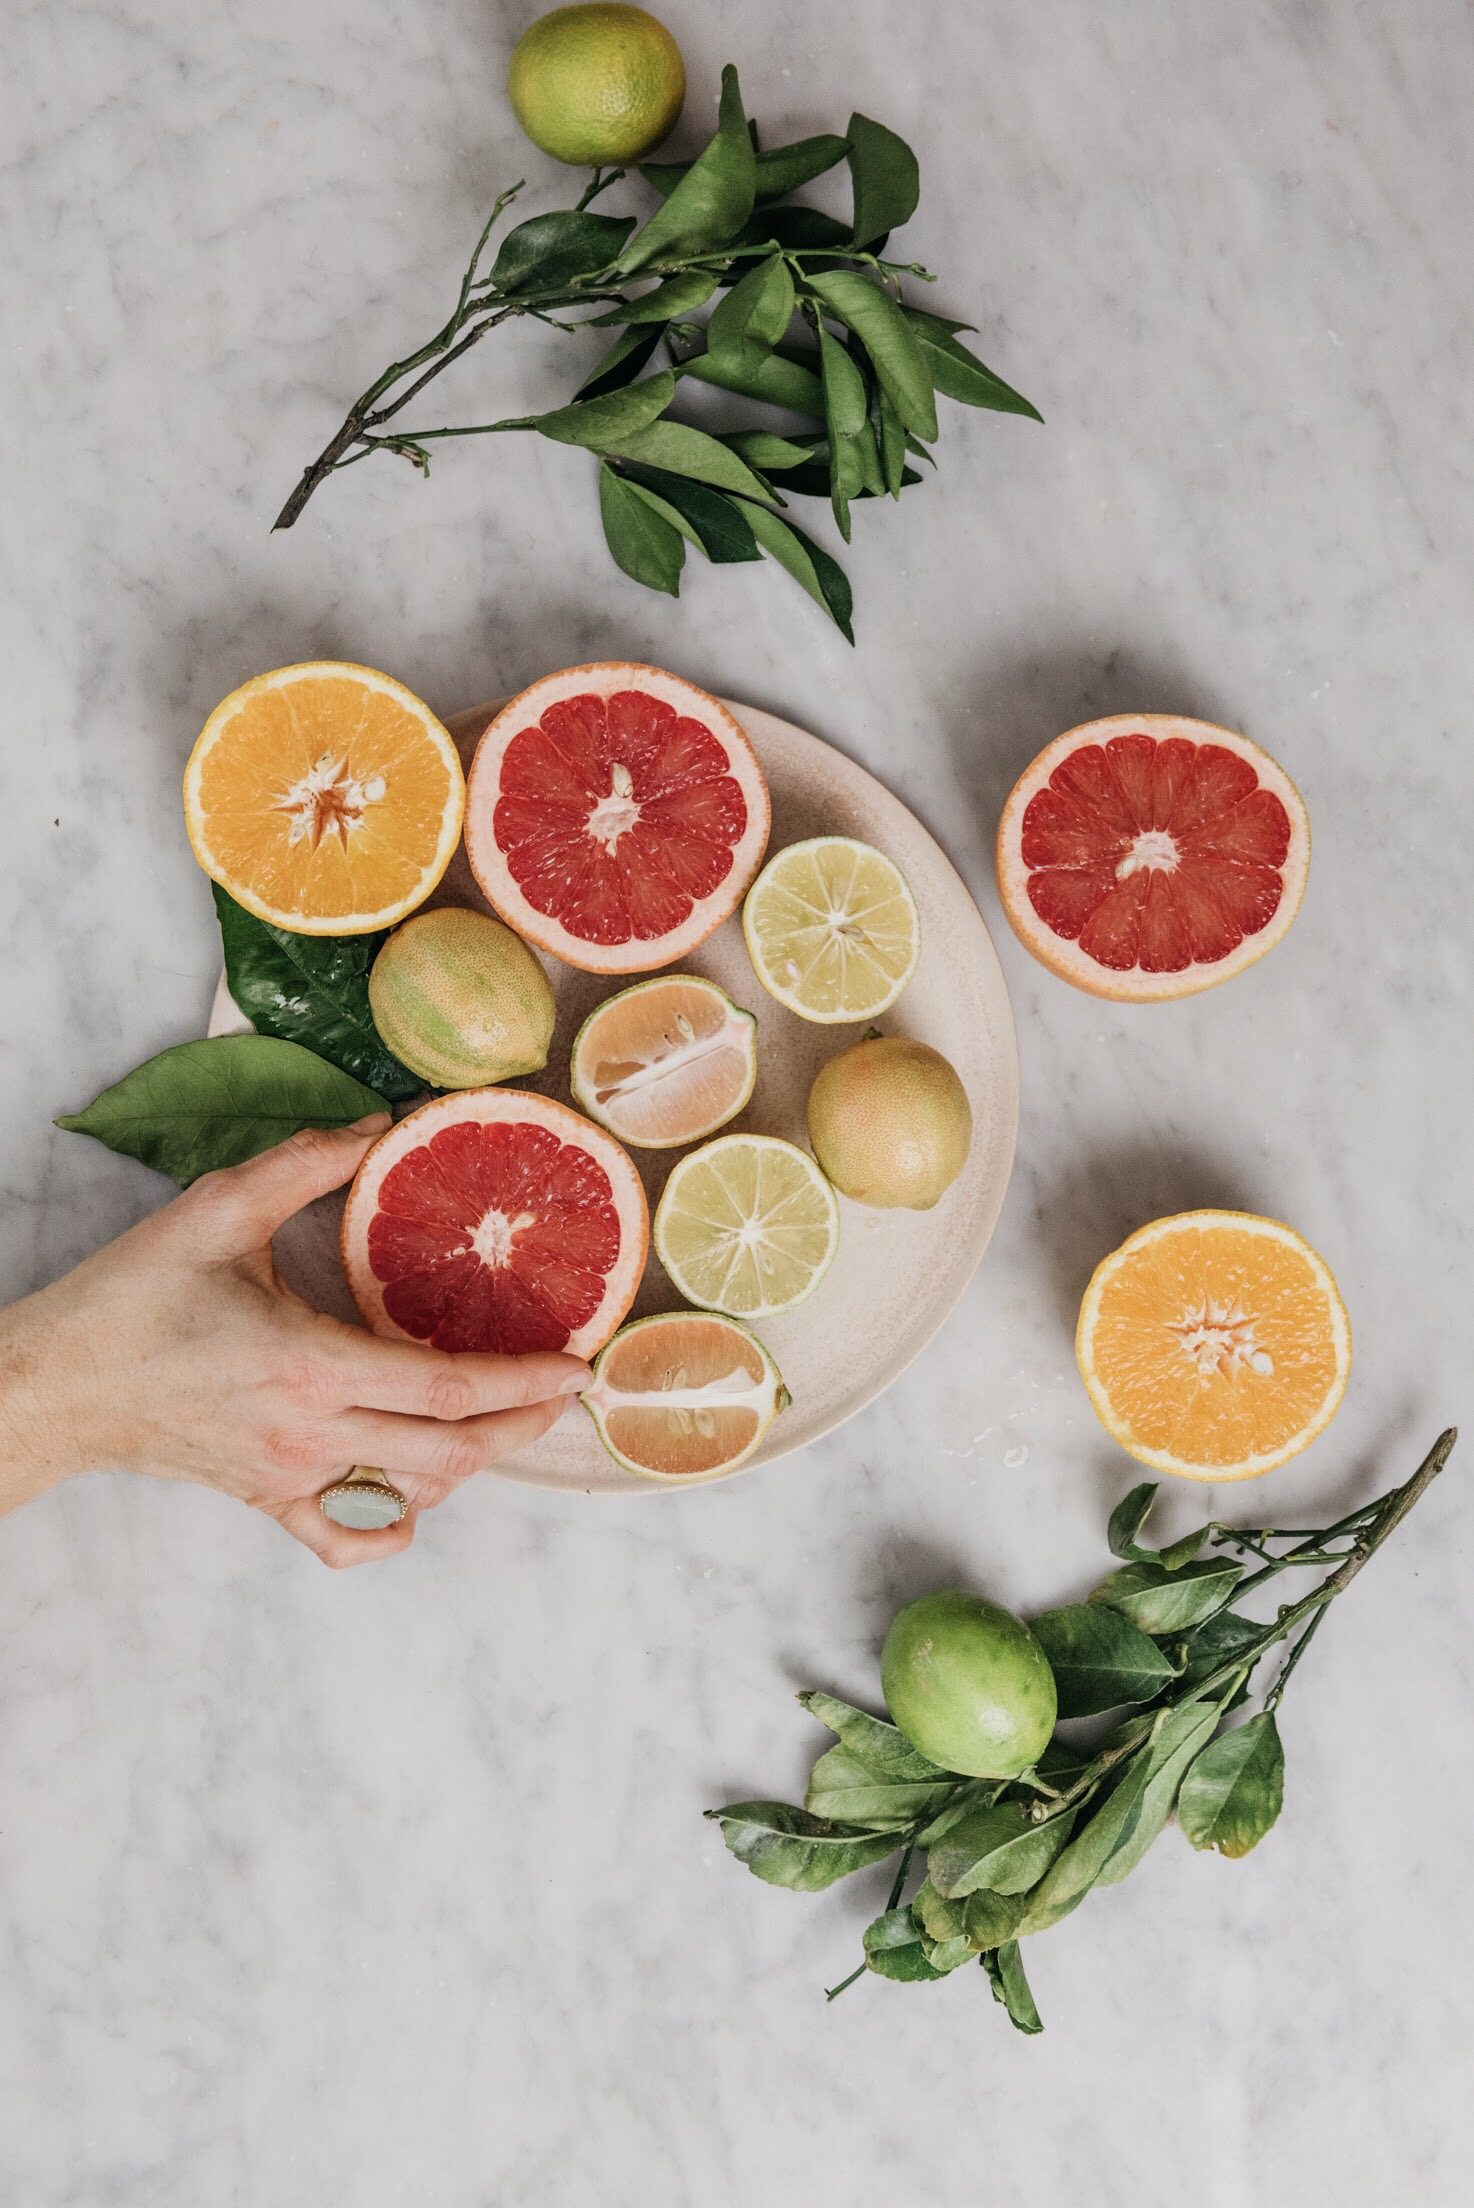 3 GENTLE PATHS TO A HEALTHIER YOU by Sarah Copeland Photo by H. Lubin #sarahcopeland #edibleliving#cleaneating#healthyliving#healthyeatingplan #harrisonLubin